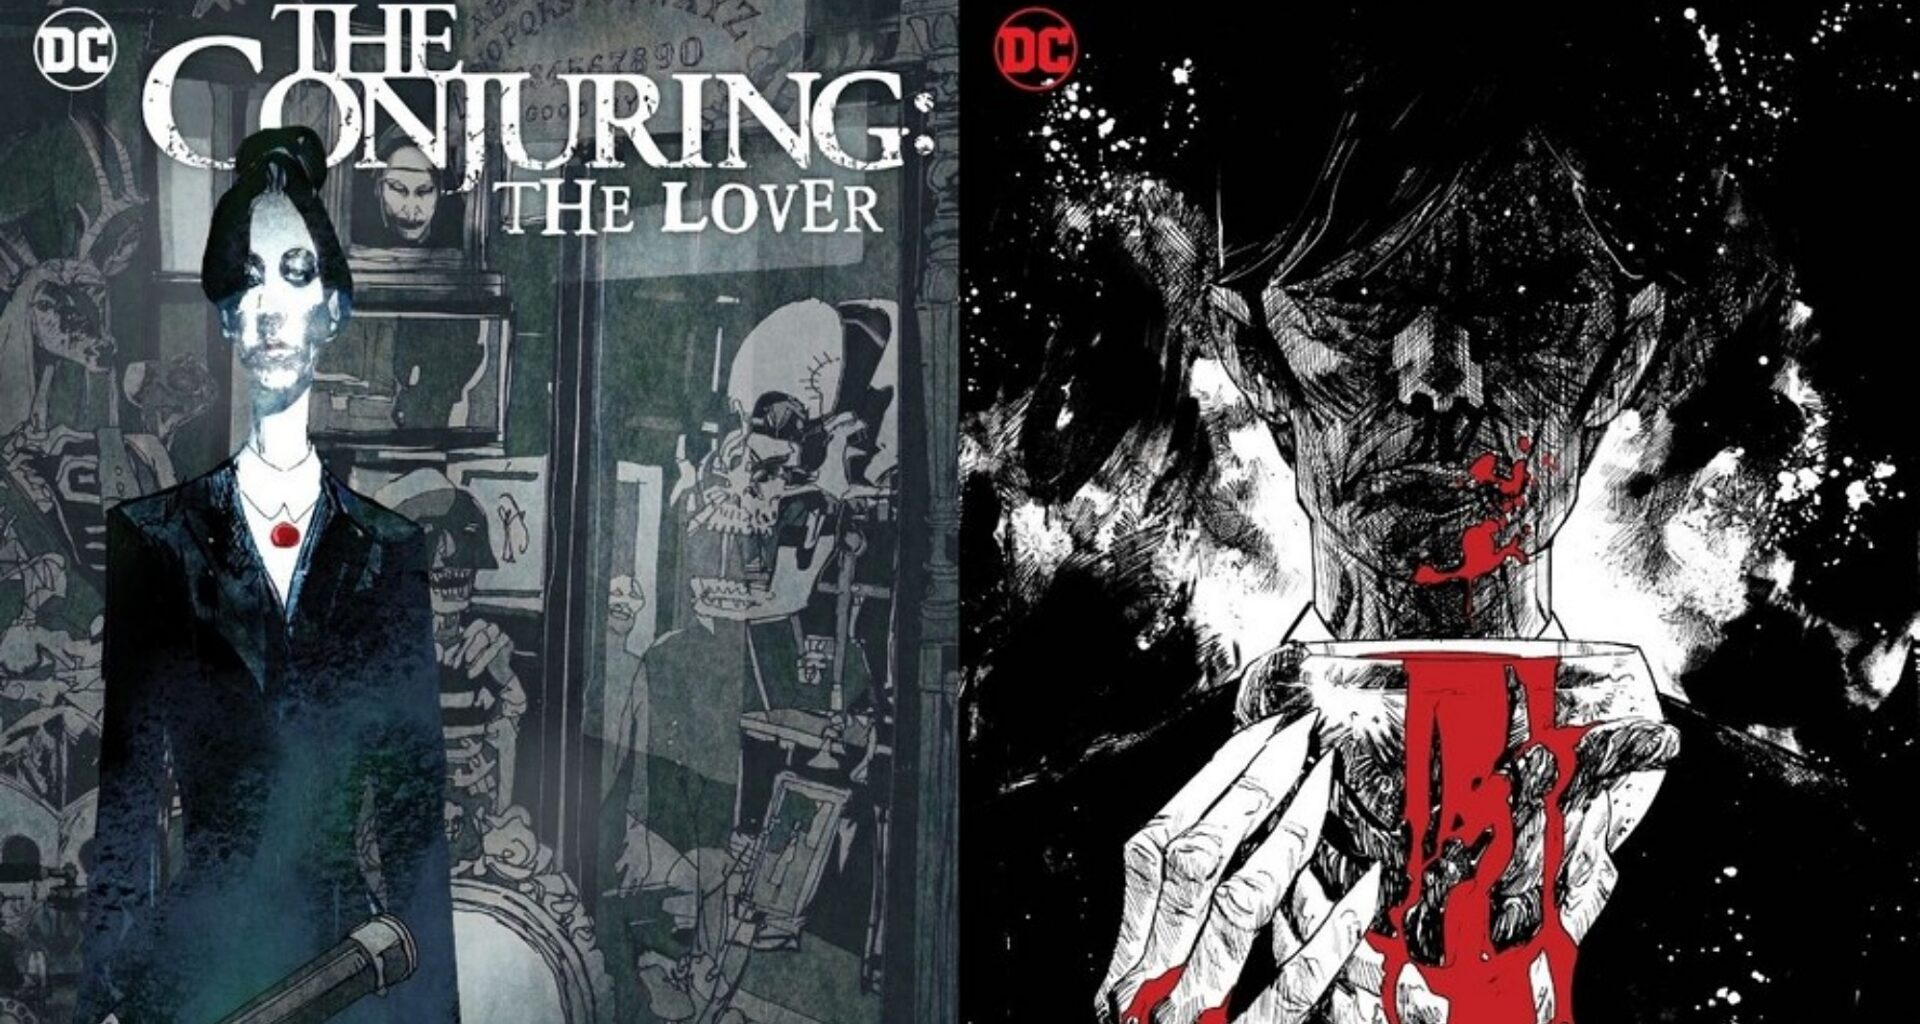 the conjuring lover dc comics h2021.jpg 1619147876 928x523 invocacao do mal